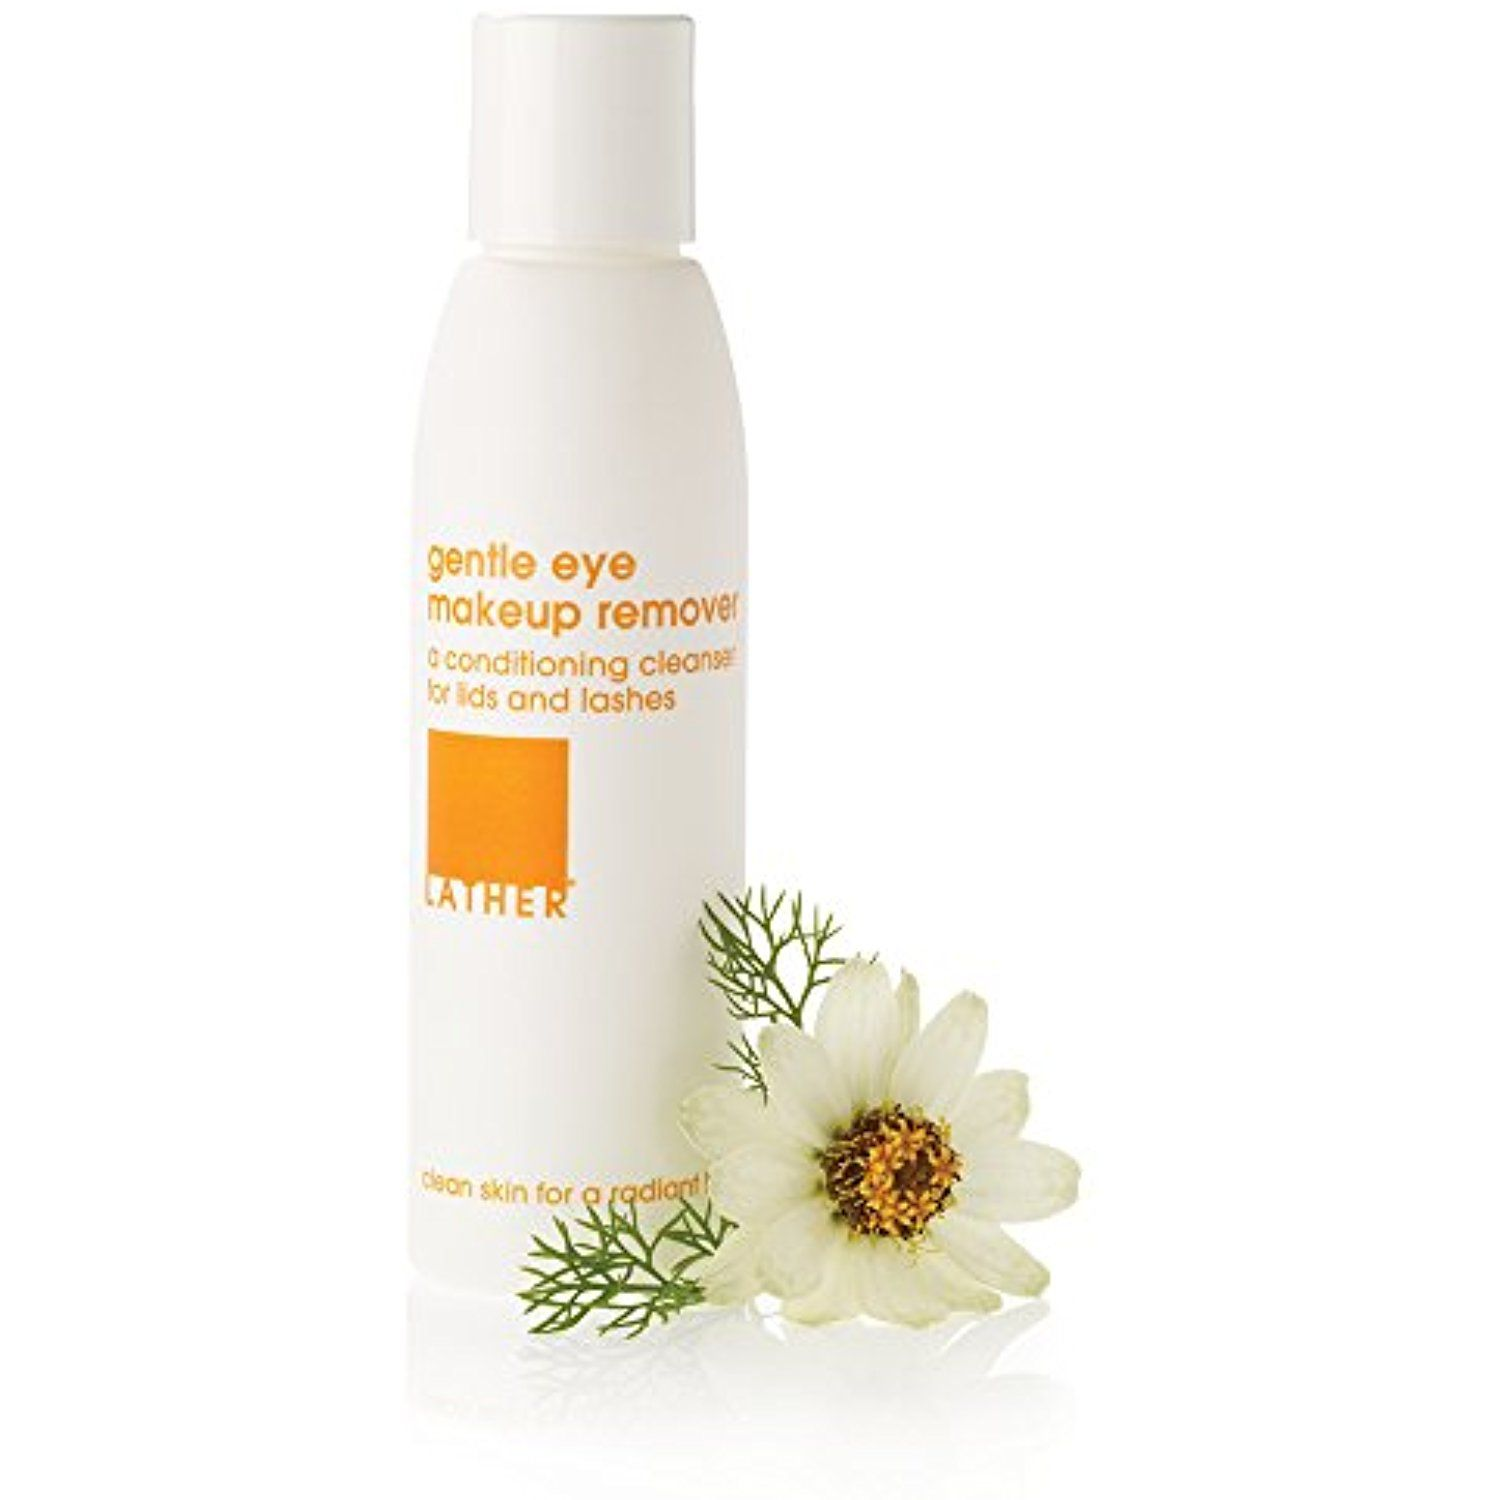 Lather Gentle Eye Makeup Remover 4 Oz Gentle Cleanser To Remove